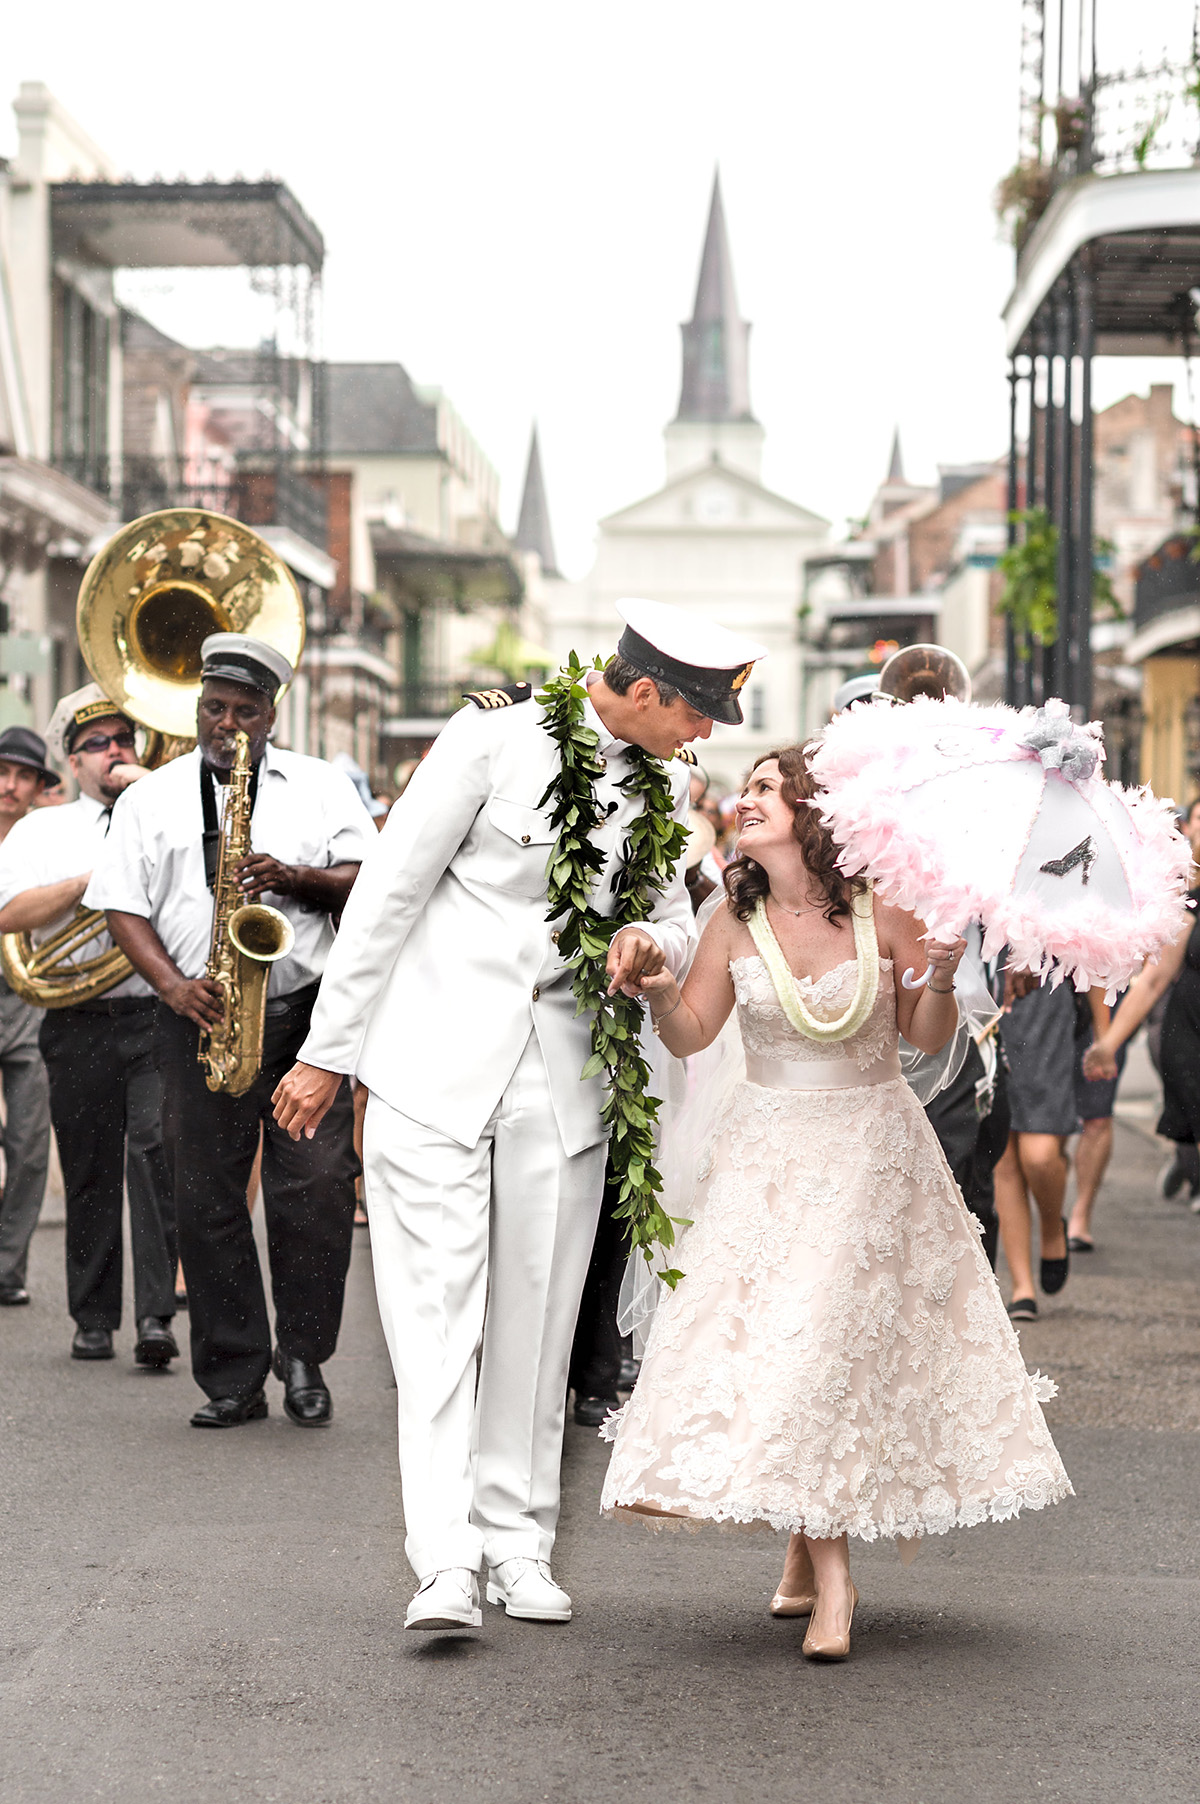 A bride and groom second line through the French Quarter with St. Louis Cathedral in the background. Photo by The Red M Studio